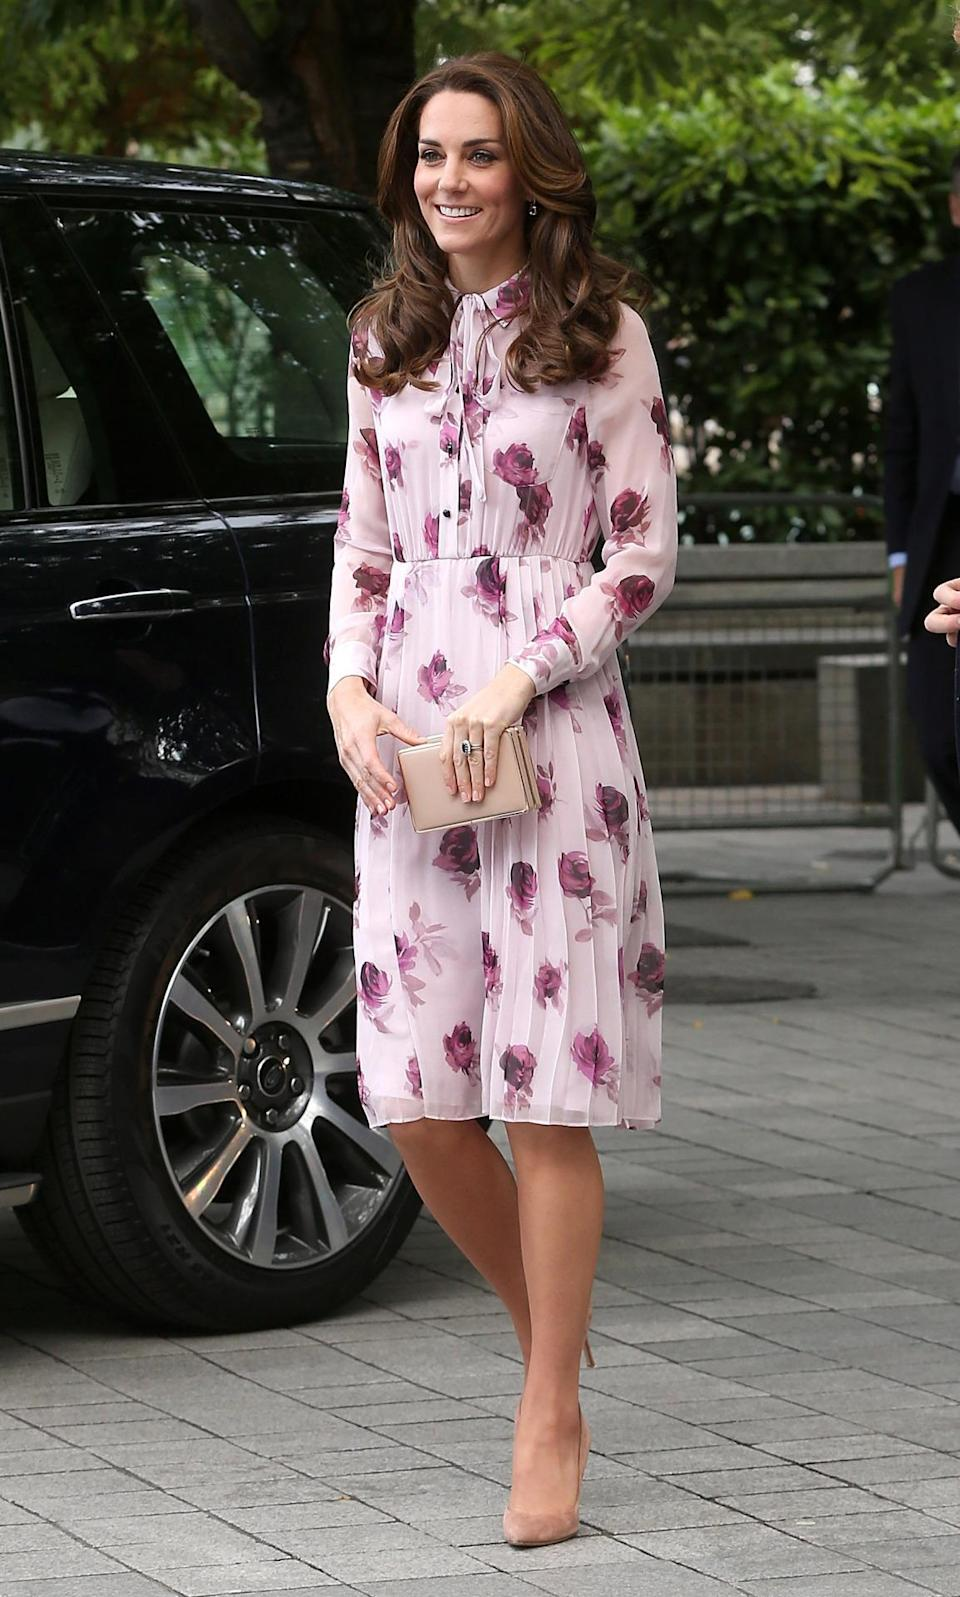 """<p>For a World Mental Health Day engagement, which the Duchess attended with Princes William and Harry, Kate turned to New York brand Kate Spade. Kate wore a version of the <a rel=""""nofollow noopener"""" href=""""http://www.katespade.co.uk/uk/dresses/encore-rose-flutter-dress/invt/njmu6930"""" target=""""_blank"""" data-ylk=""""slk:Encore Rose dress"""" class=""""link rapid-noclick-resp"""">Encore Rose dress</a>, which costs £405. </p><p><i>[Photo: Getty]</i> <br></p>"""